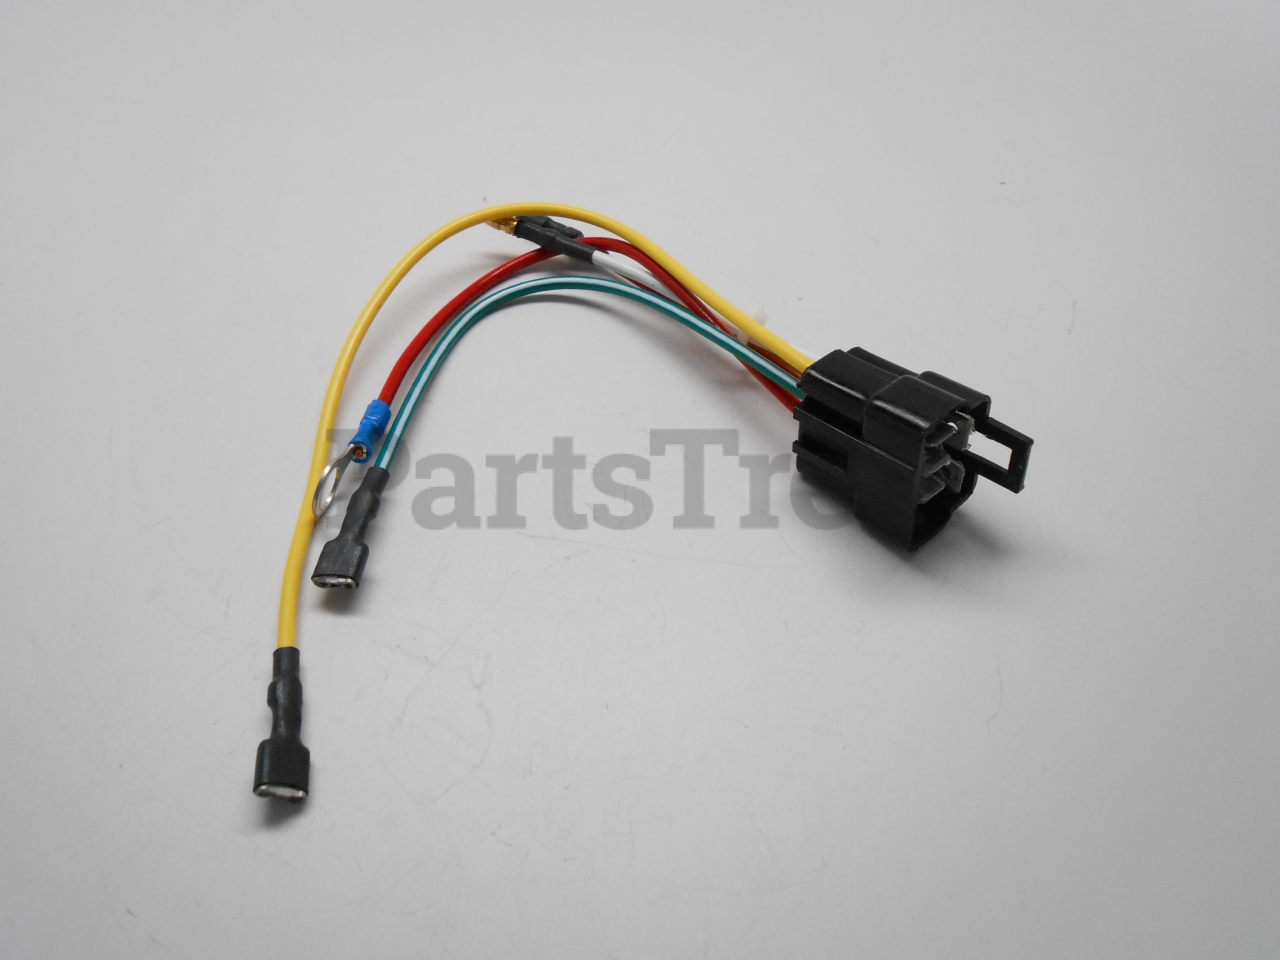 scag part 482543 wire harness adapter stc ka partstree